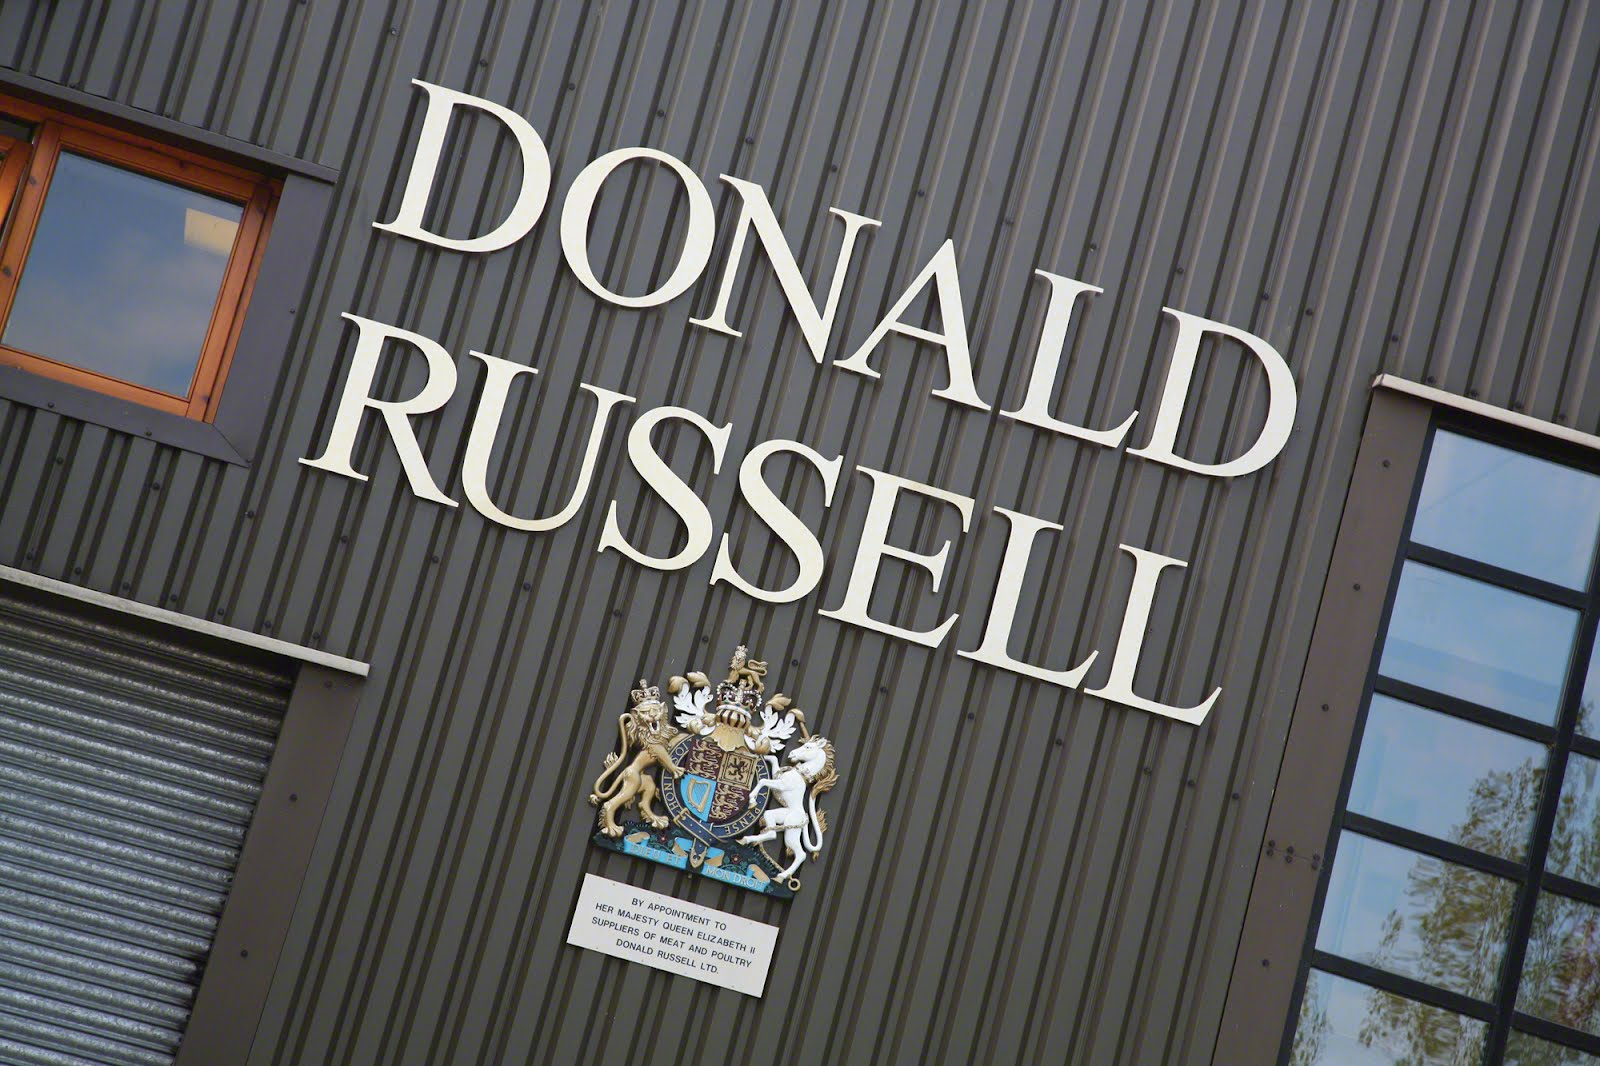 Donald Russell factory exterior sign